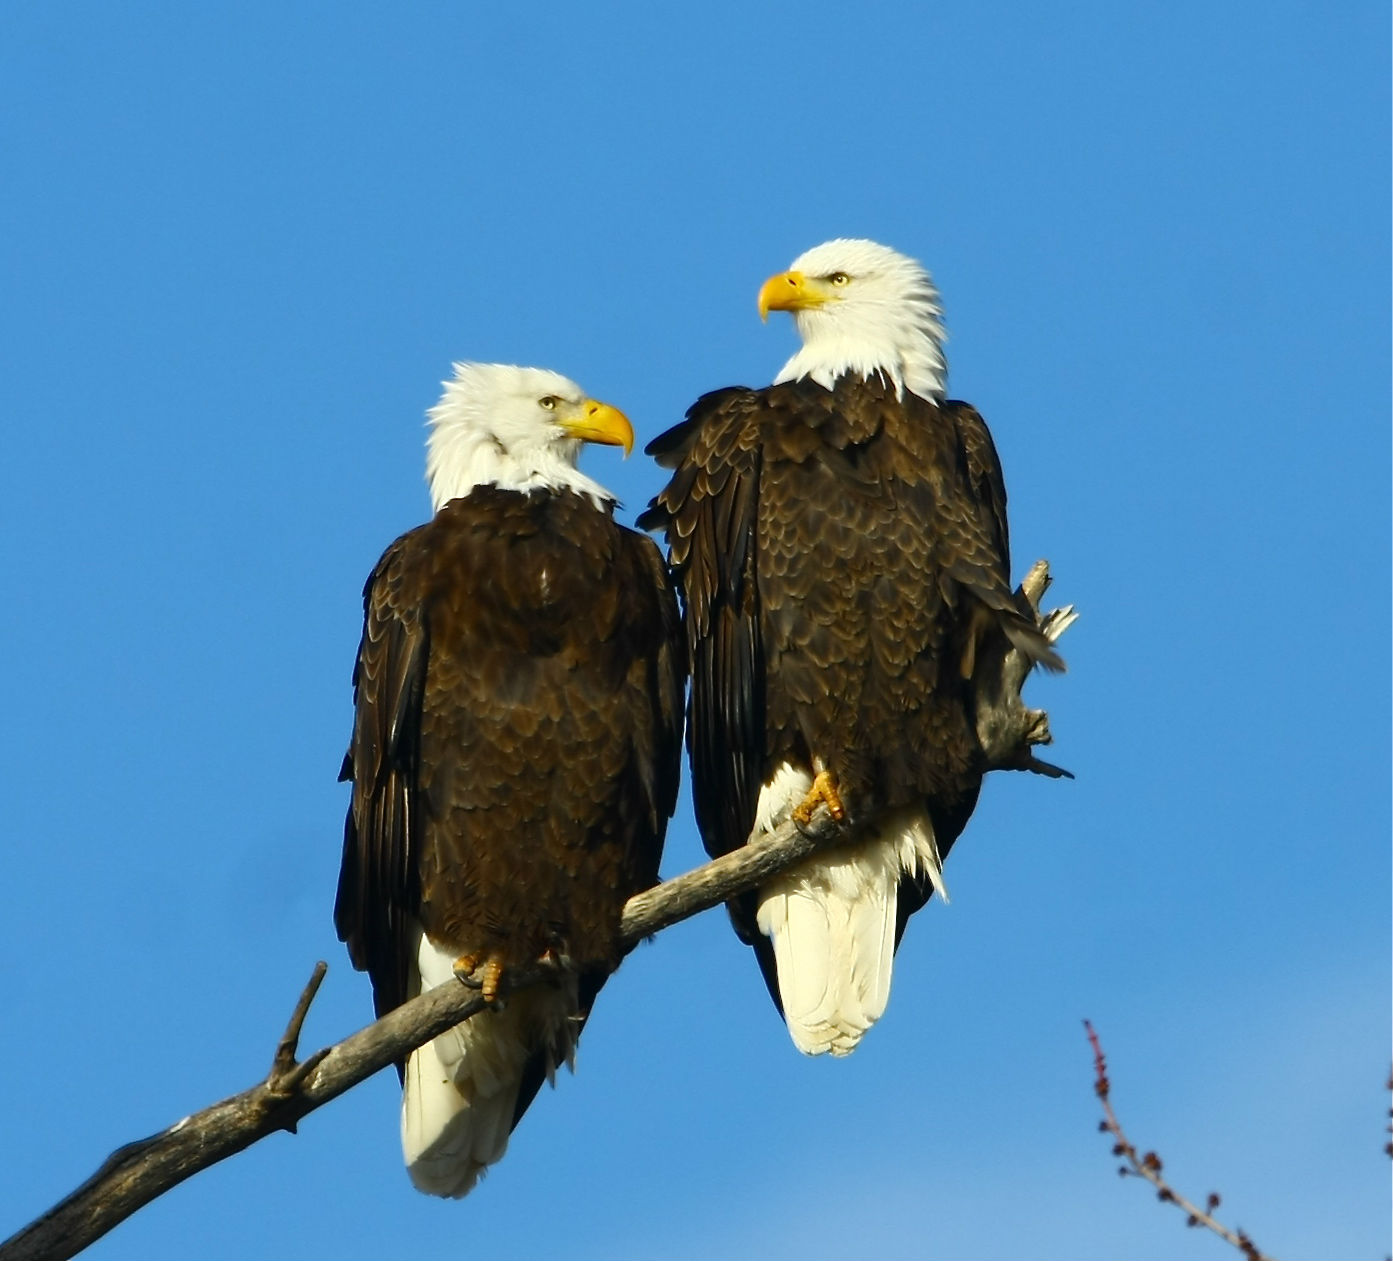 All About Animal Wildlife Bald Eagle Cool Photos Images